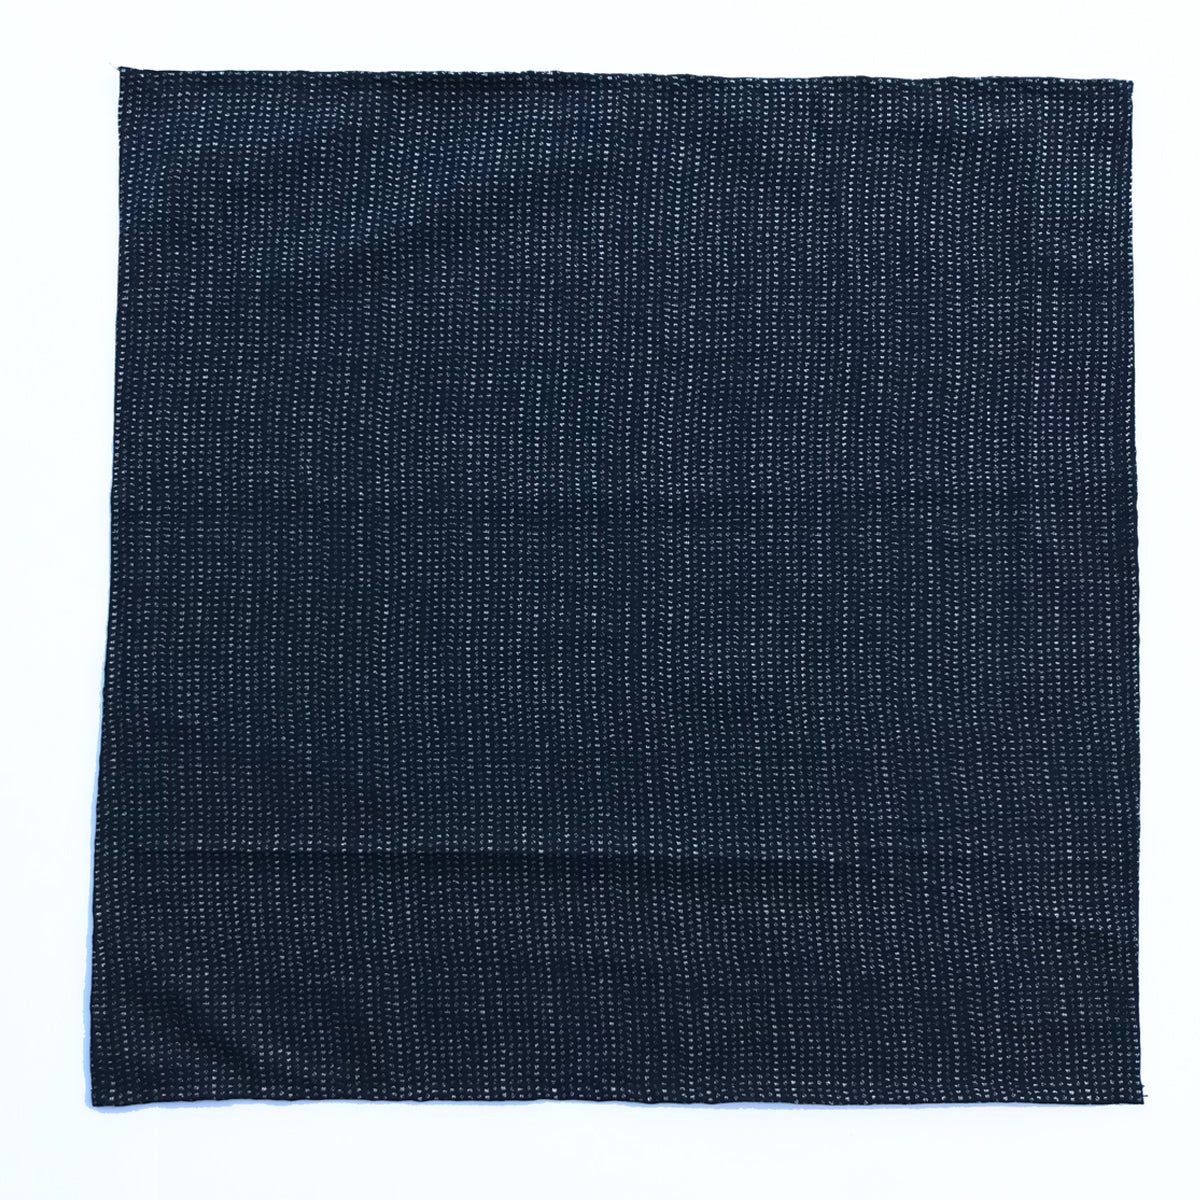 "Japanese Nara Cotton Canvas Indigo Handkerchief 27.5 x 27.5 ""DASH"""